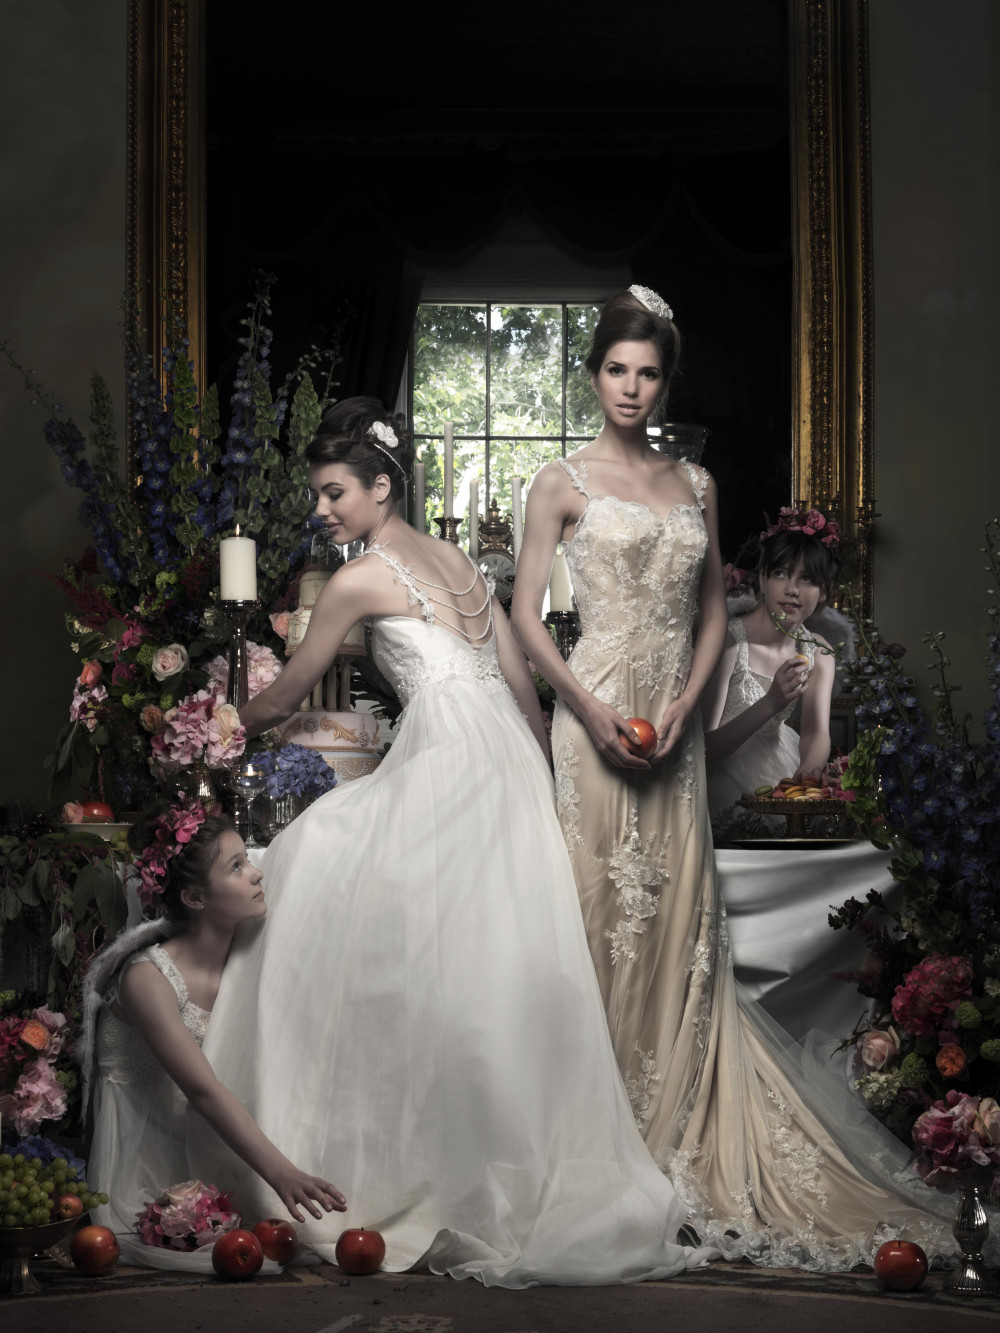 It was an absolute pleasure to work with celebrity photographer and artist Simon Weston for award winning dress designer Natalie Gladman of Madeline Isaac James. This was an extravagantly styled shoot set in the lavish and grand Trinity house in London (now available for weddings too!) which overlooks the Tower of London.